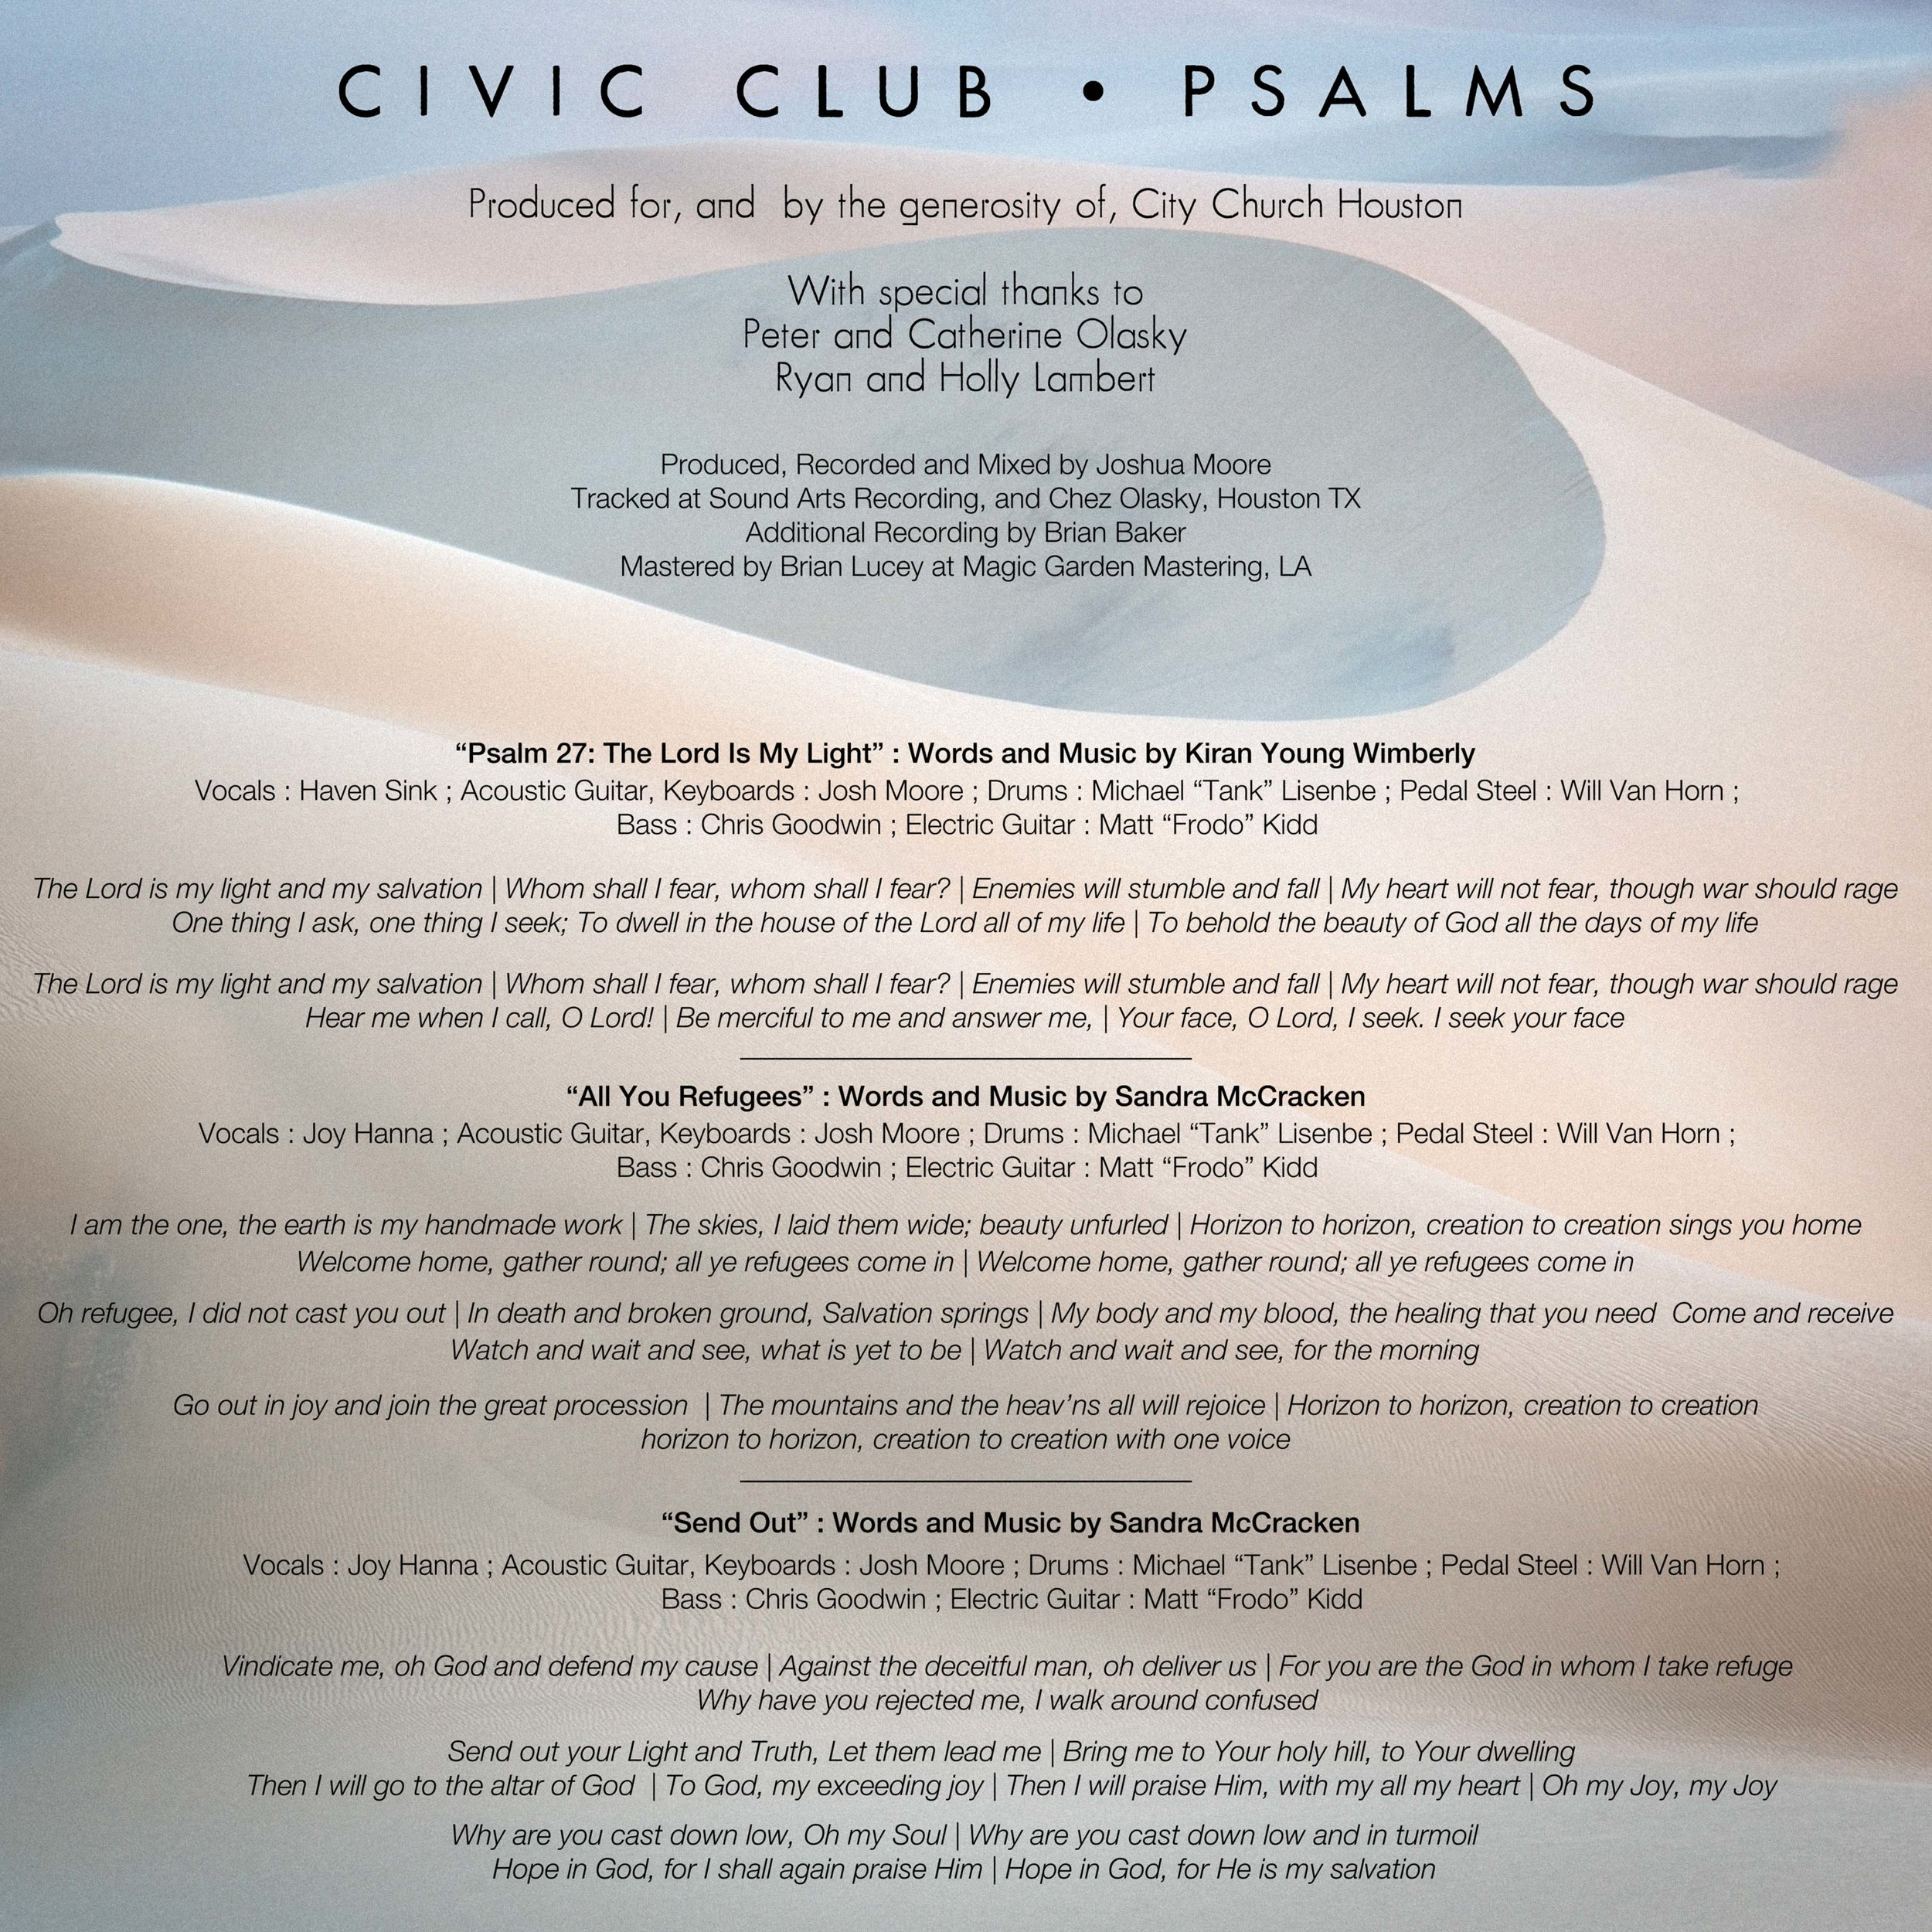 CC Psalms EP Liner Notes FINAL-2.jpg